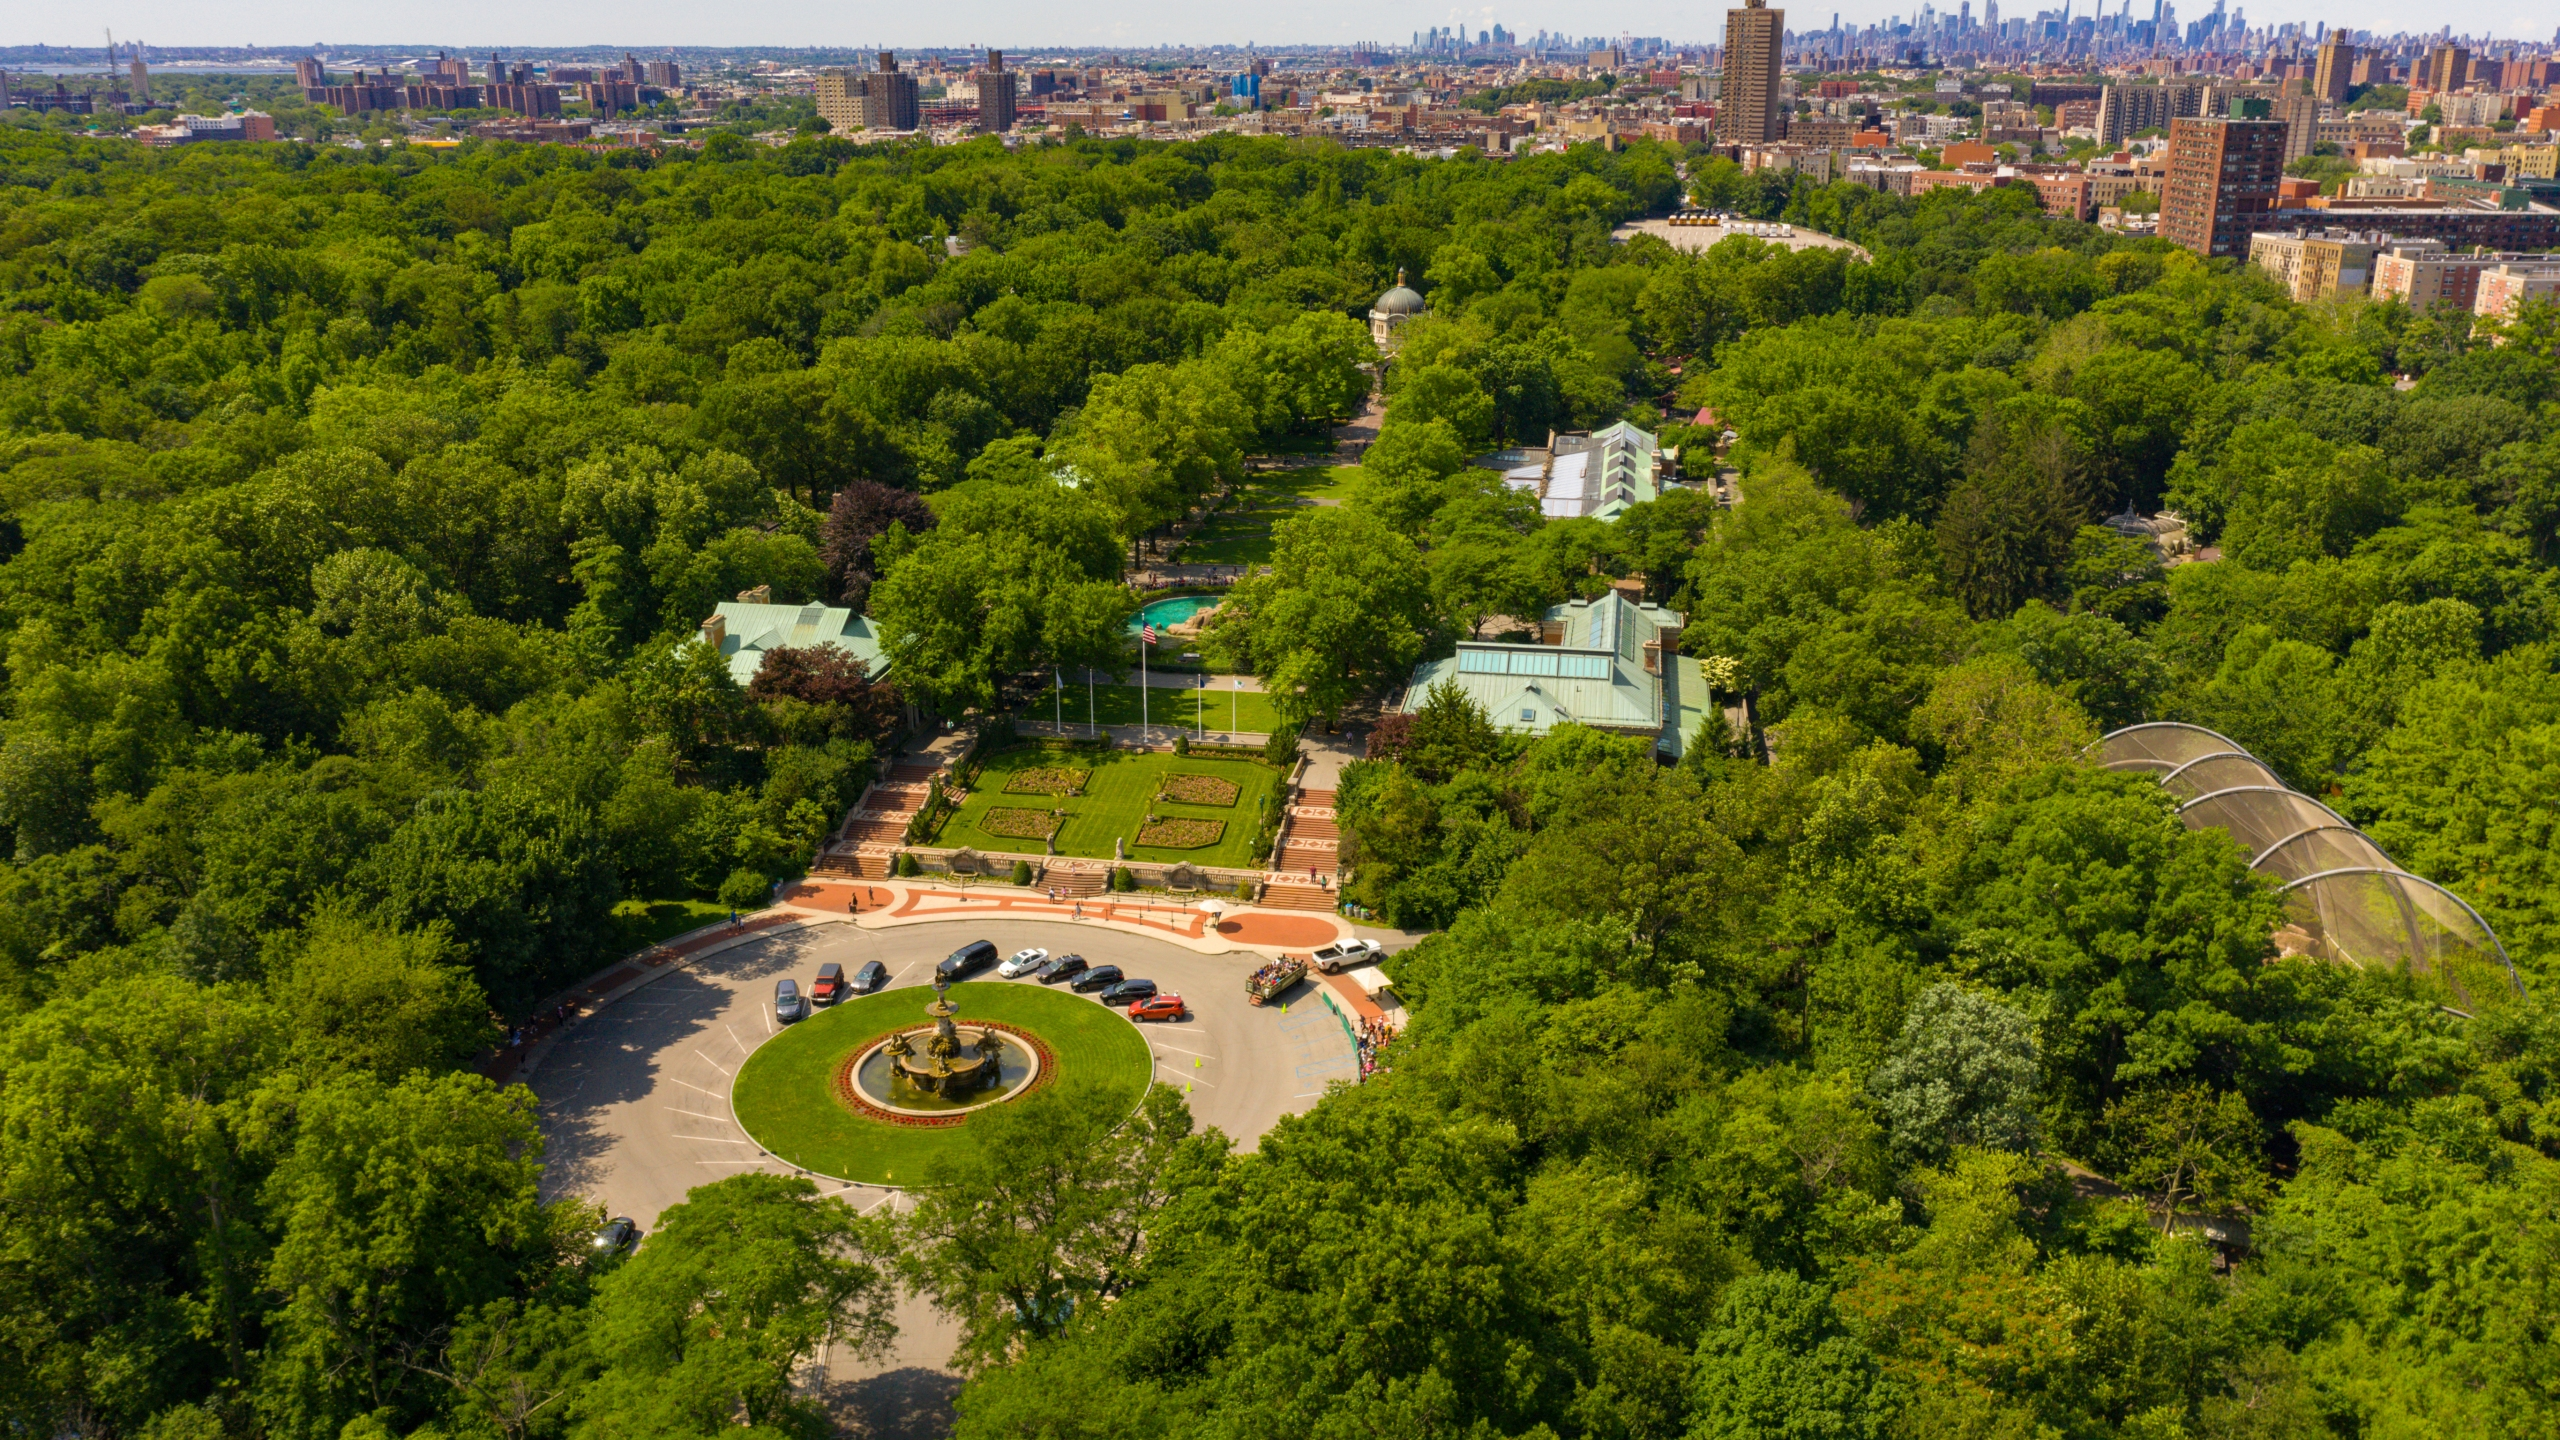 An aerial view of the Bronx Zoo in New York City is seen in an undated photo. (Credit: iStock / Getty Images Plus)